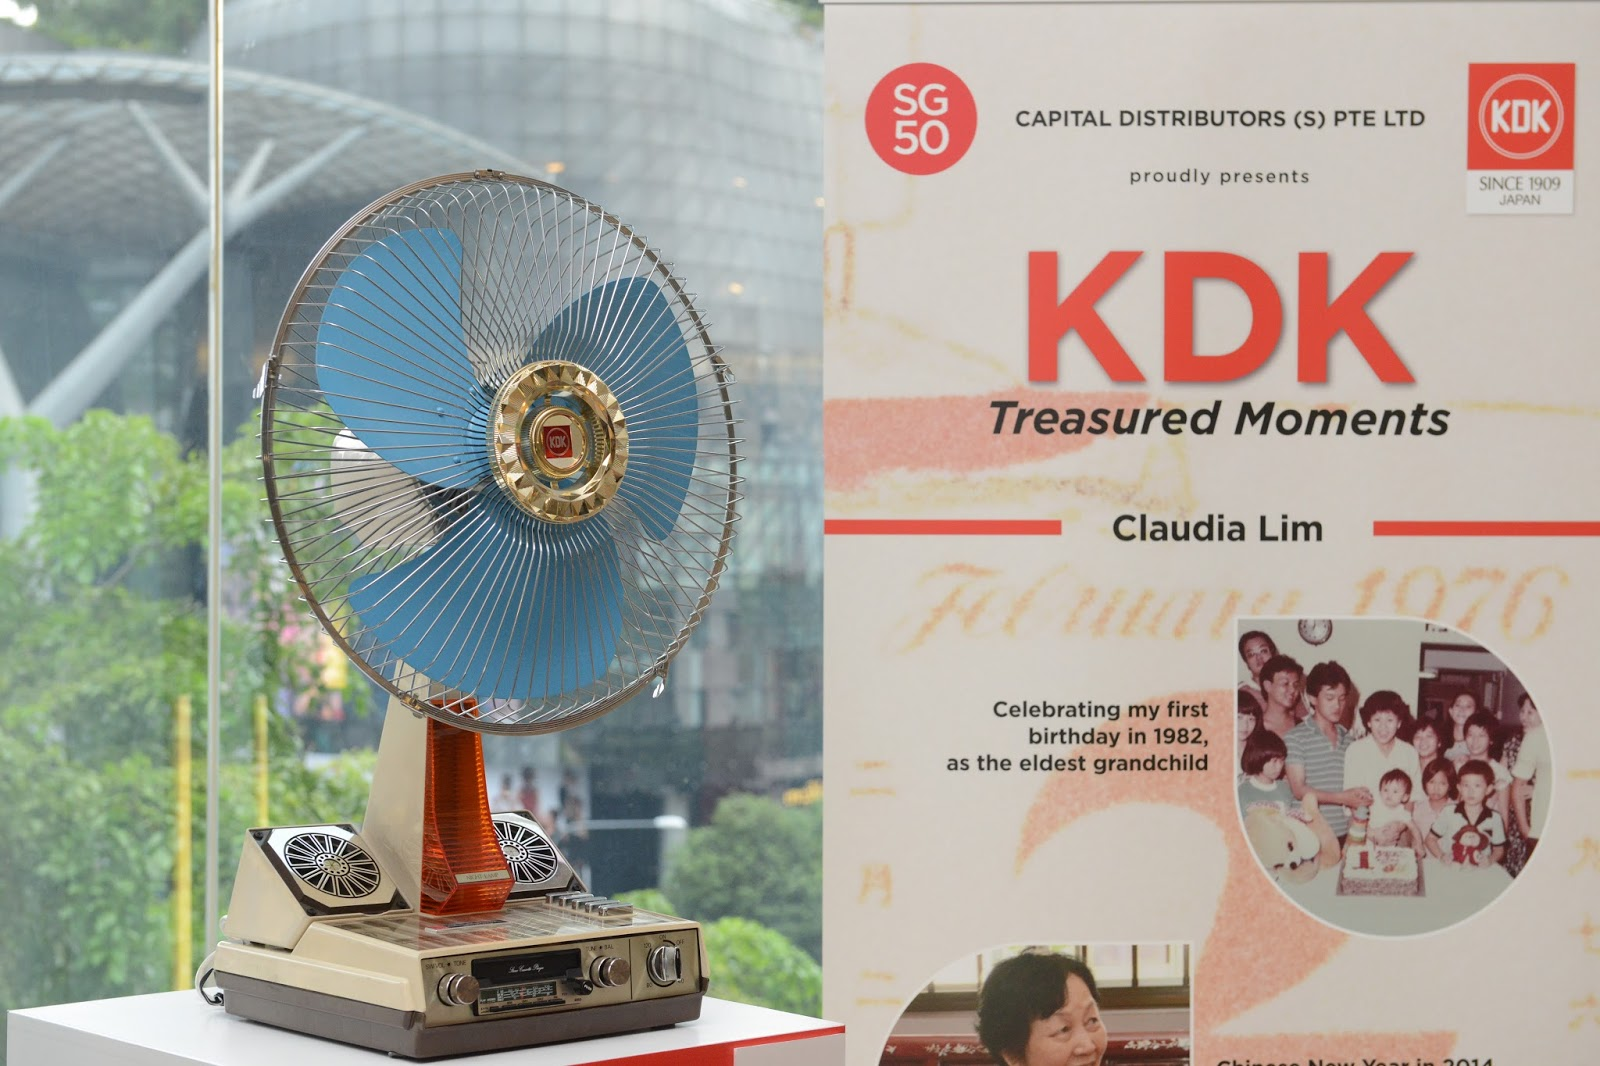 Kdk 8quot Fan Antique Fans Electric T And Vortelex 3speed Oscillating Table Model 78x593 Youtube The Winners Of Competition Also Received Limited Edition Flashpay Cards Box Look At Them Smiling Away For Camera